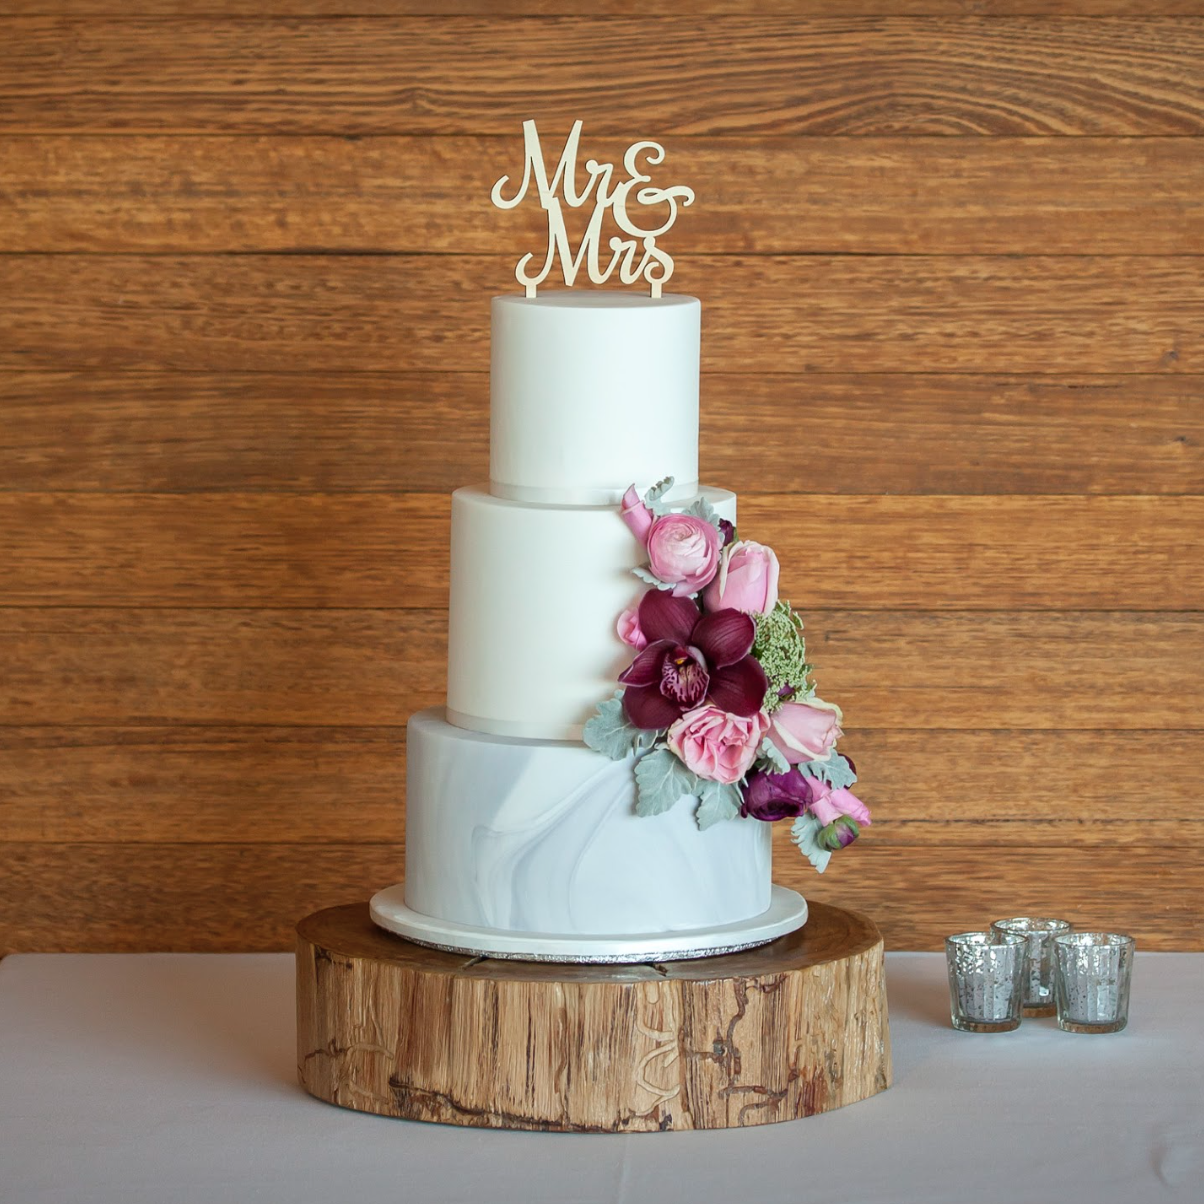 Rustic Wedding Wood Cake Stand: Rustic Wood Cake Stand